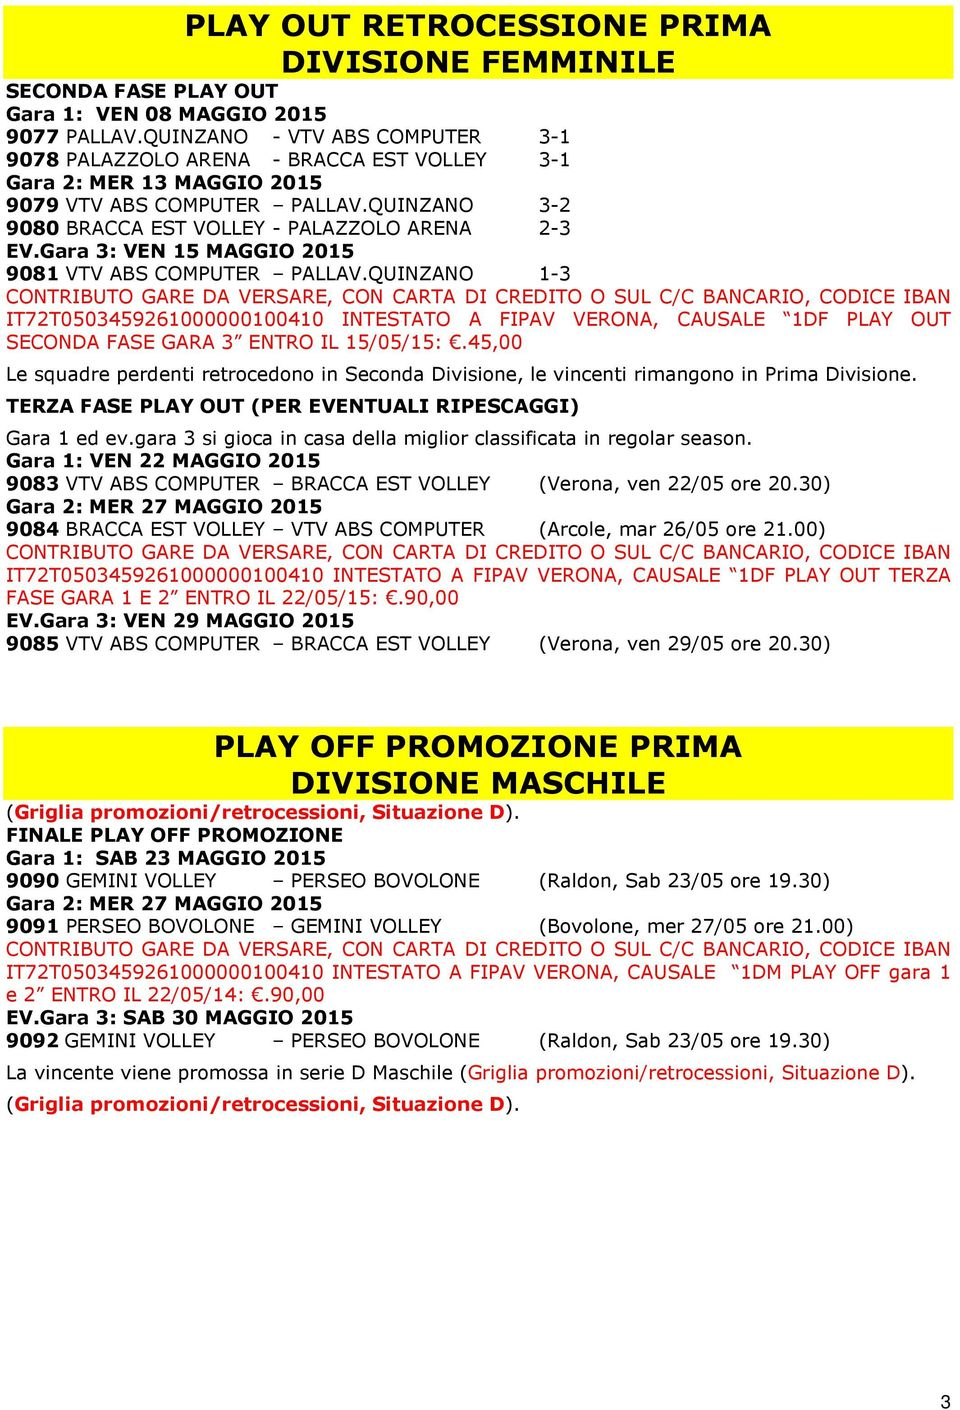 Gara 3: VEN 15 MAGGIO 2015 9081 VTV ABS COMPUTER PALLAV.QUINZANO 1-3 IT72T0503459261000000100410 INTESTATO A FIPAV VERONA, CAUSALE 1DF PLAY OUT SECONDA FASE GARA 3 ENTRO IL 15/05/15:.